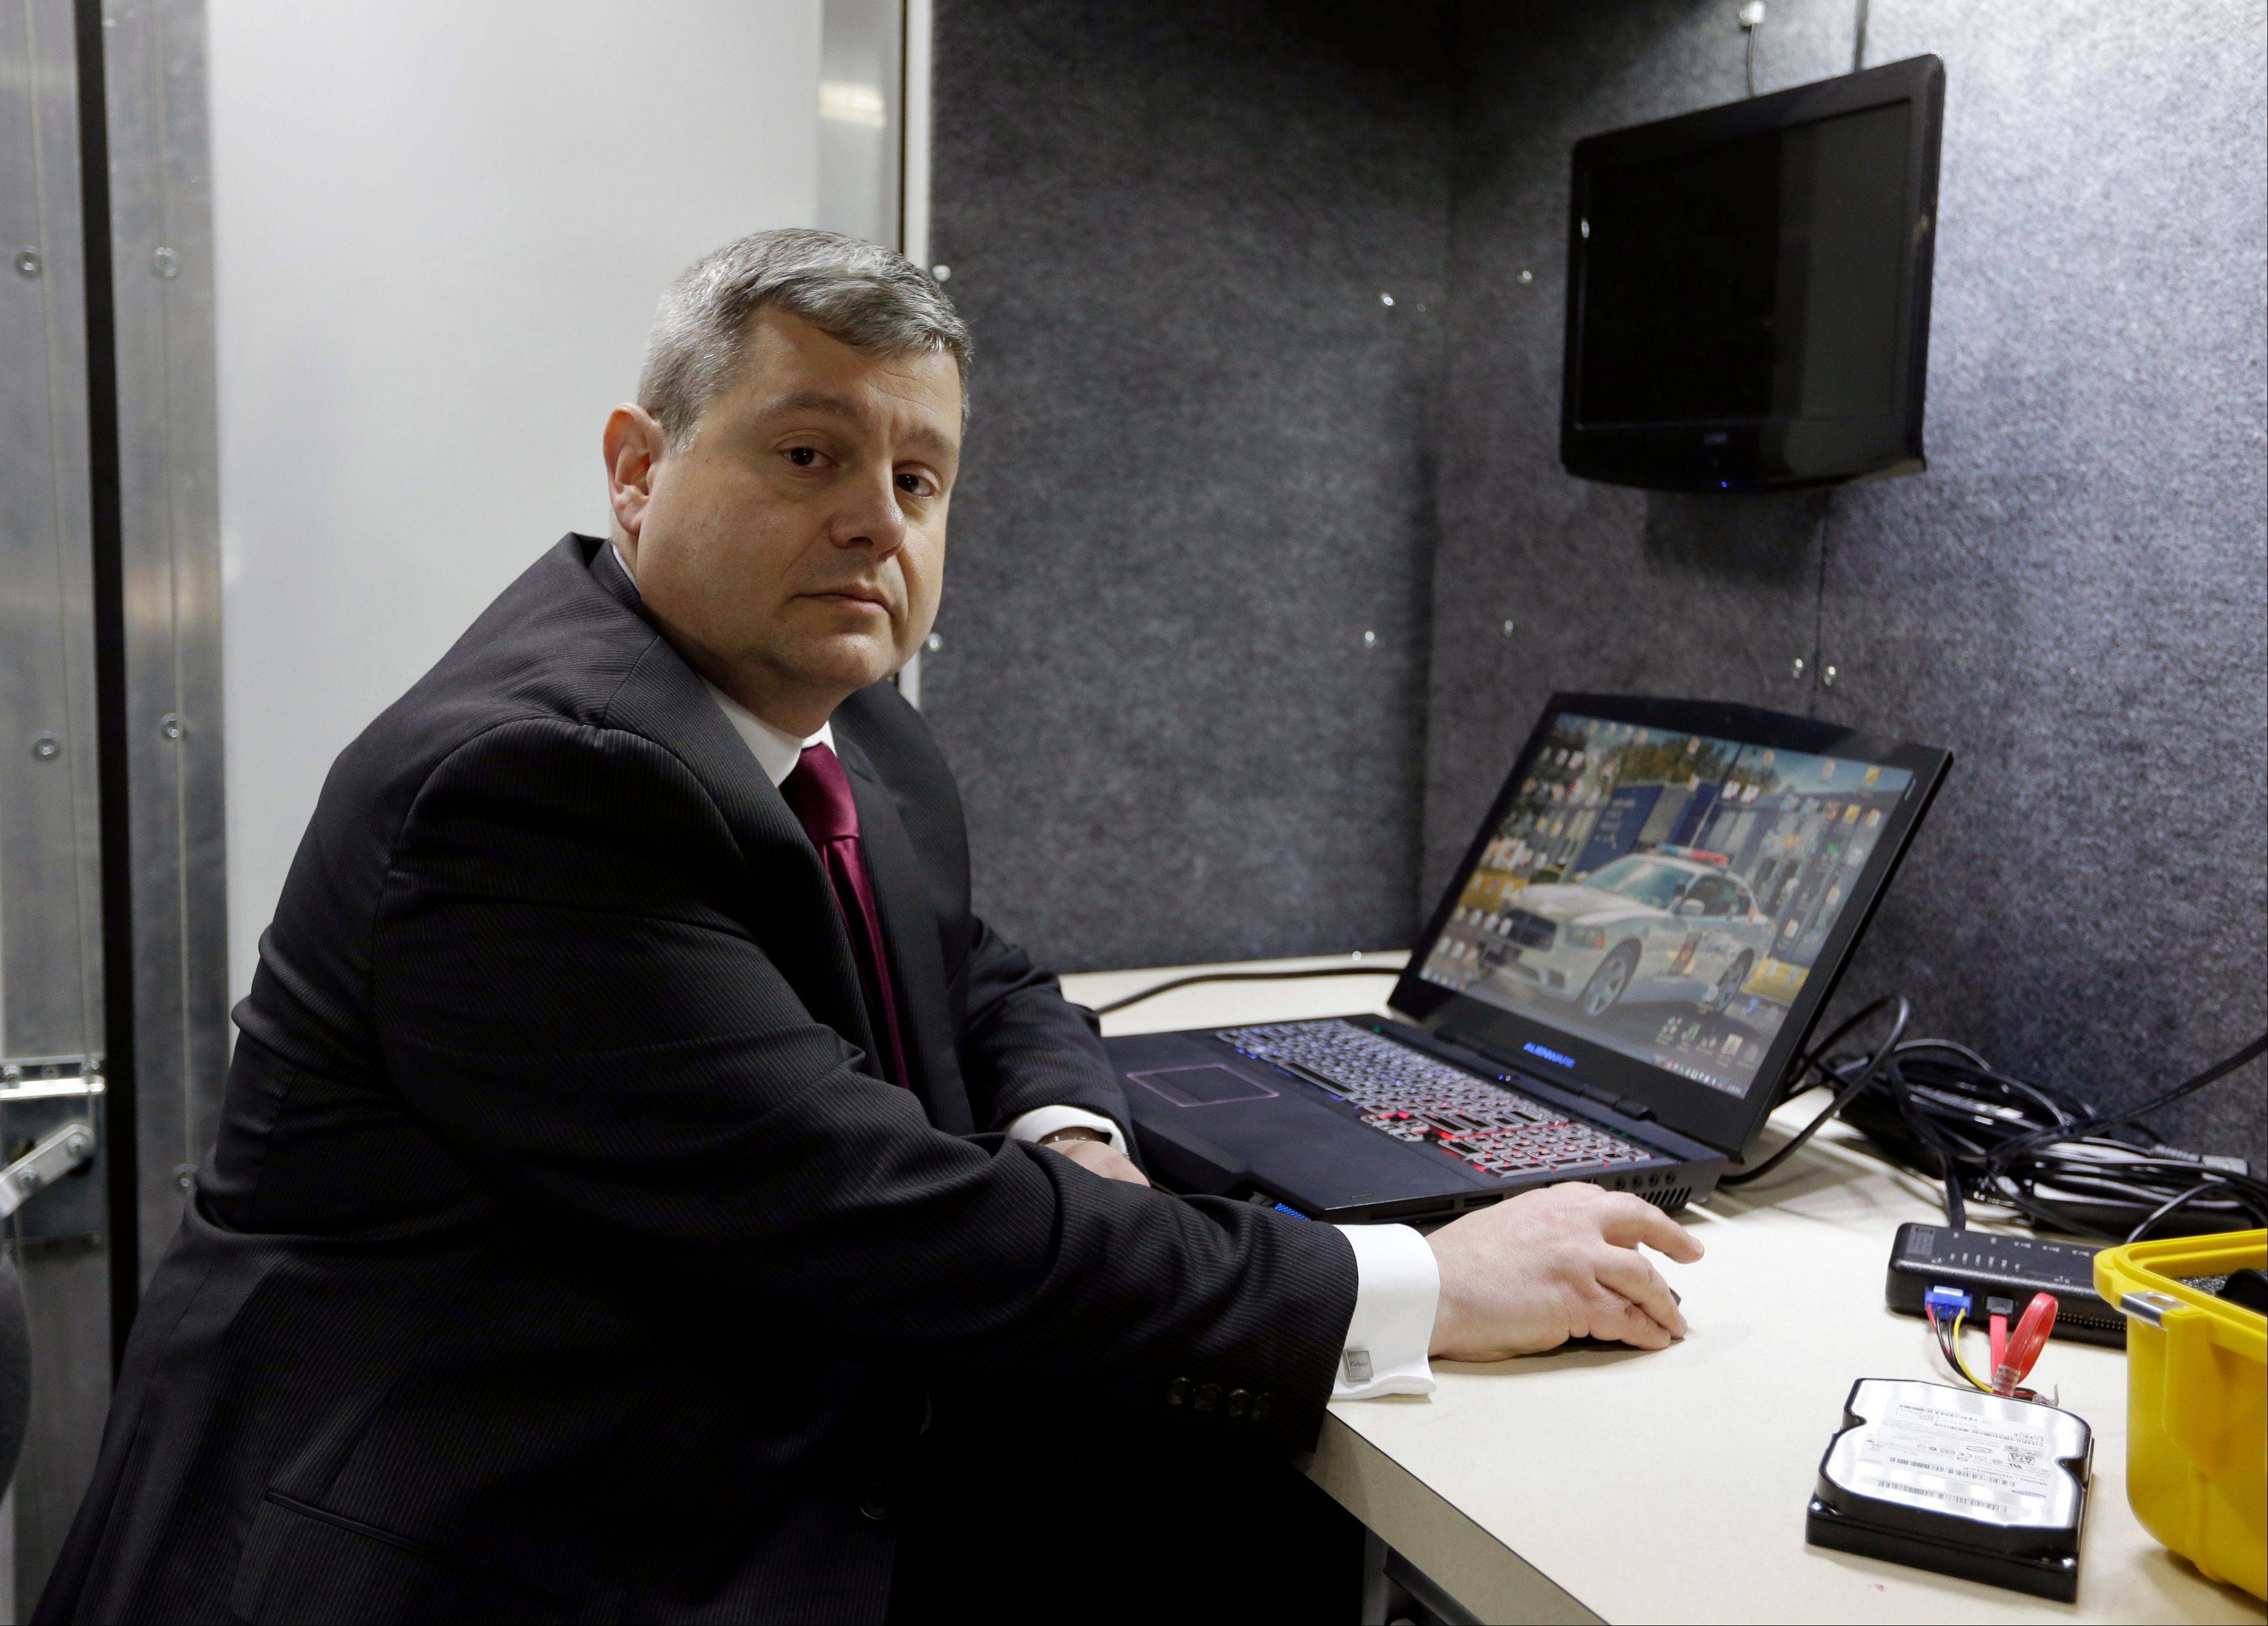 In this Feb. 19 photo, Indiana State Police Lt. Chuck Cohen poses for a photo in a mobile crime lab in Indianapolis. The lab is used by an Indiana task force that is building a national reputation for aggressive pursuit of child pornographers worldwide.